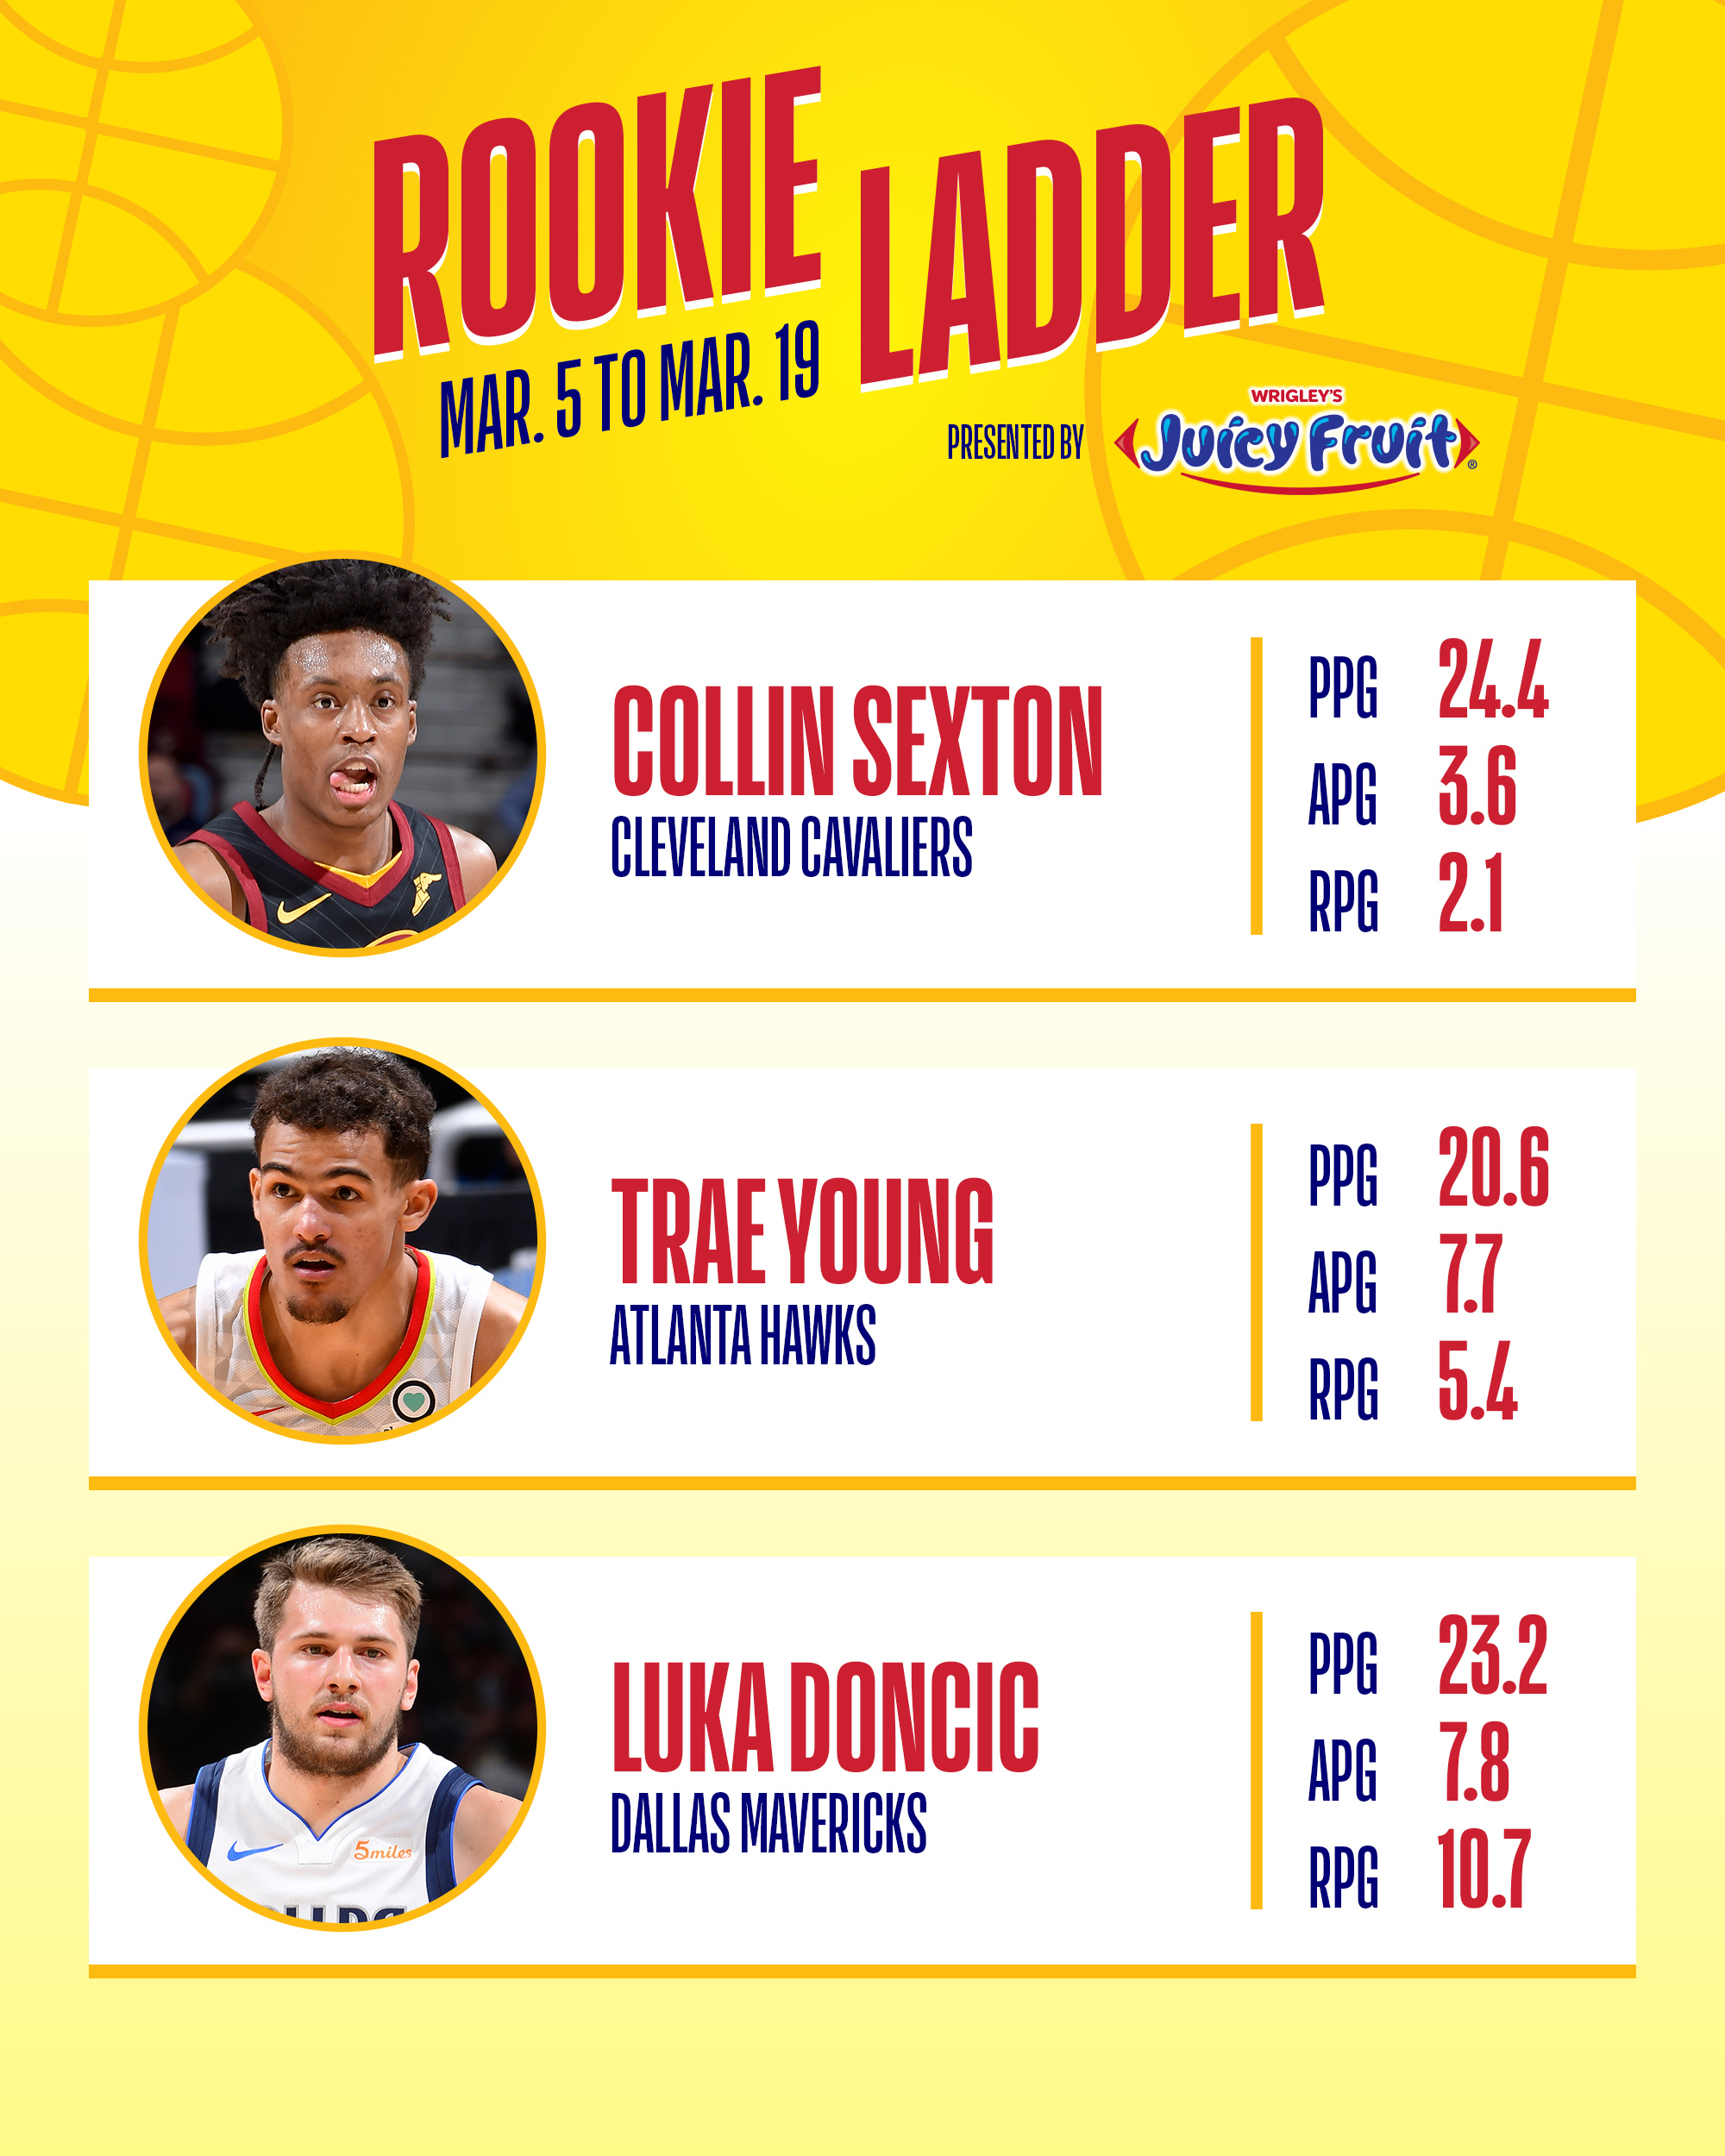 Nba Rookie Of The Year Power Rankings Luka Doncic Or Trae: NBA Rookie Ladder Presented By Juicy Fruit: Collin Sexton